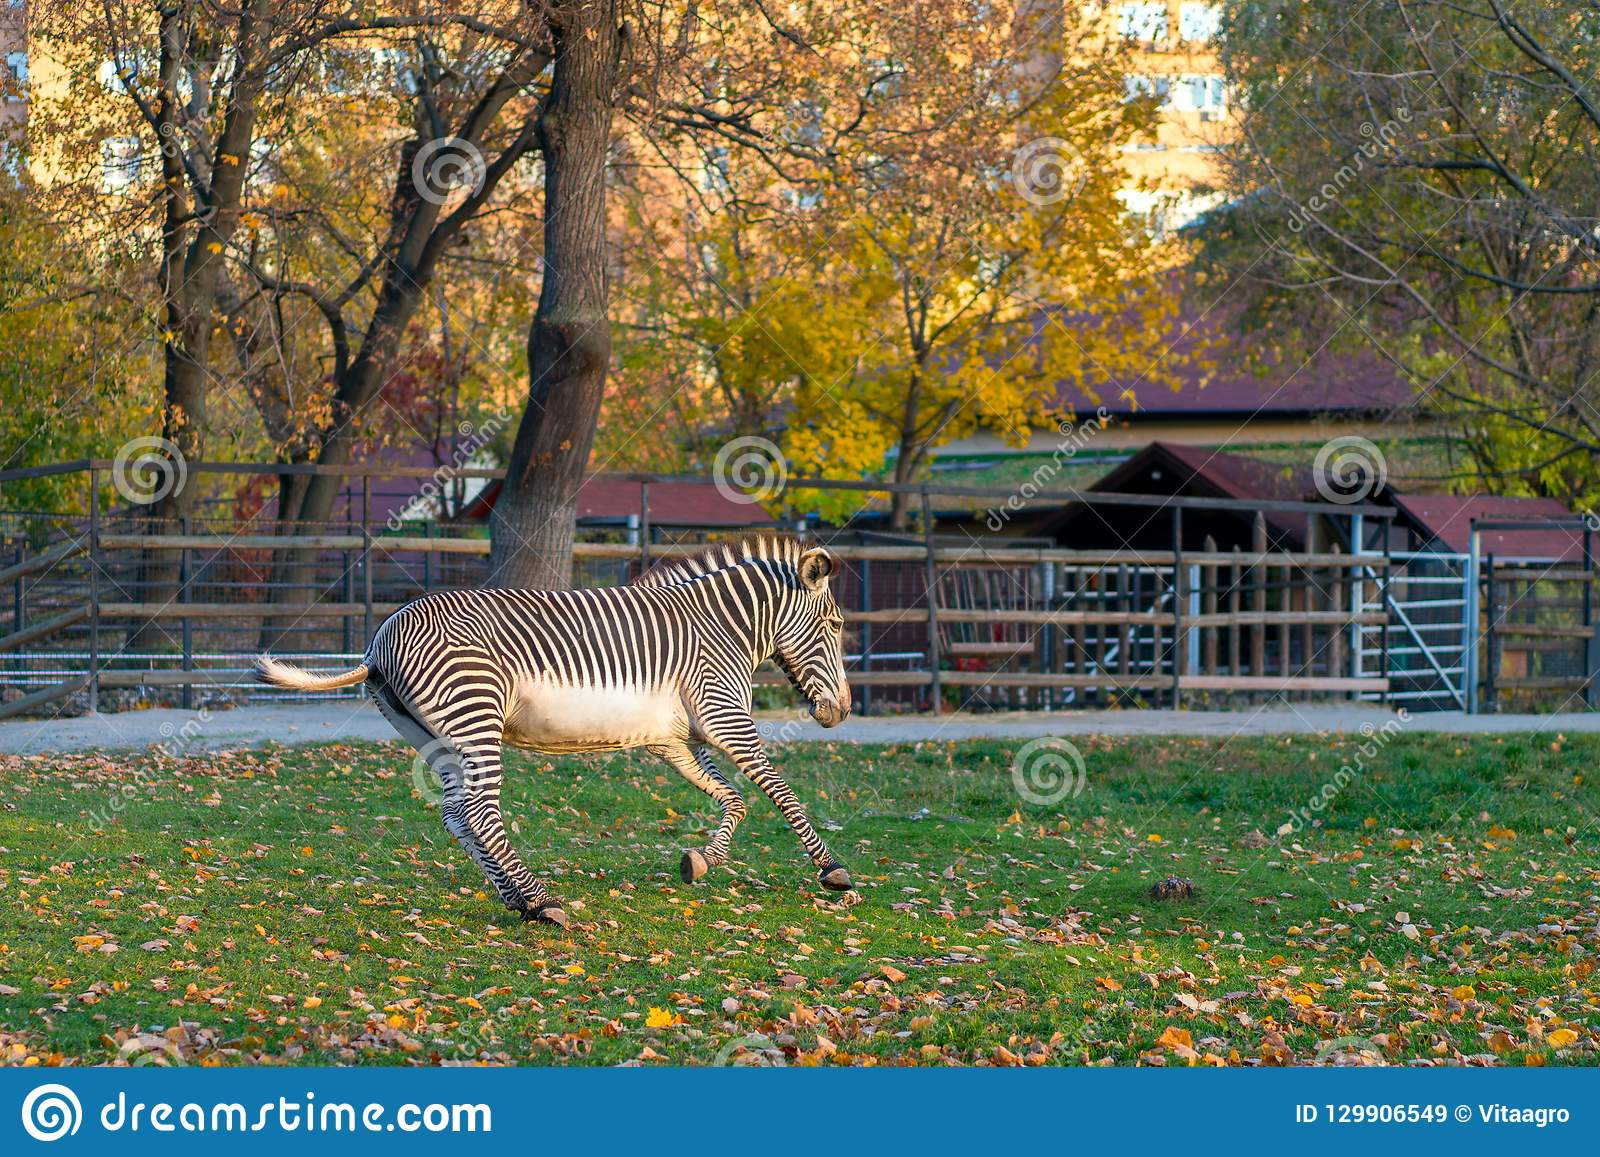 Zebra gallops in city park in autumn season.